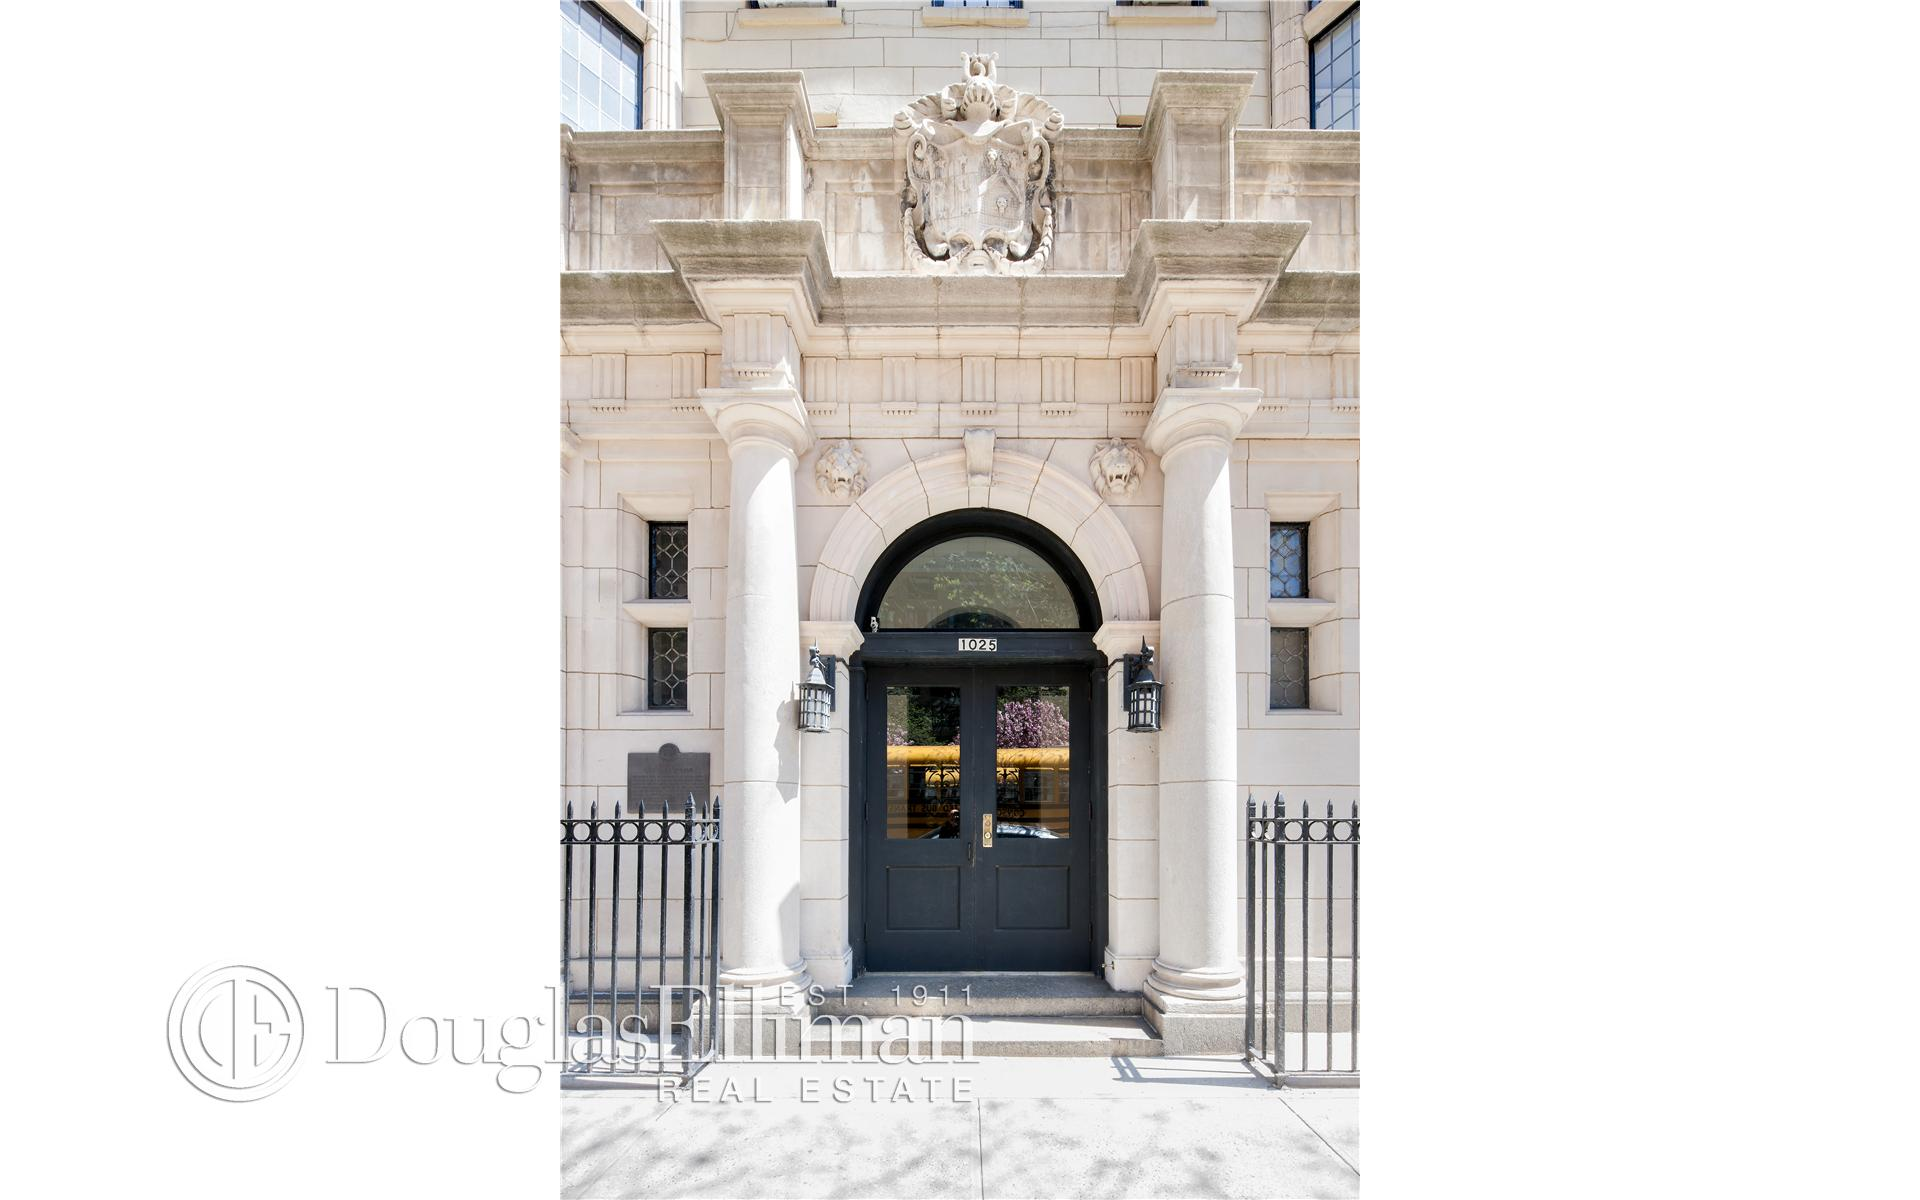 Condominium for Sale at 1025 PARK AVE CORP, 1025 Park Avenue New York, New York 10028 United States